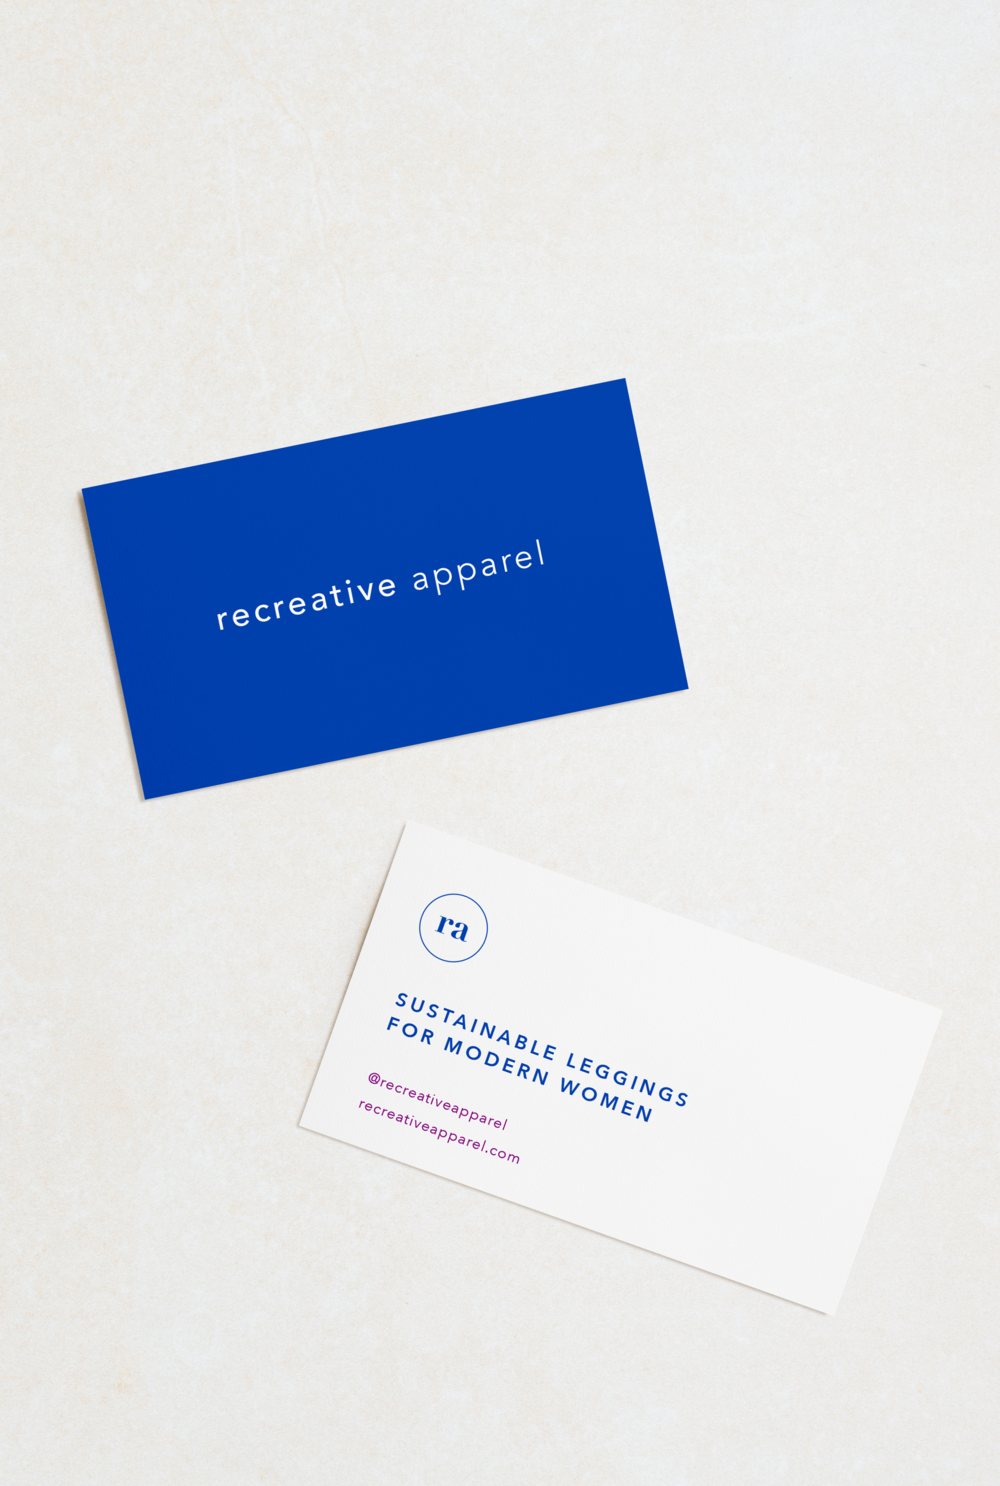 Recreative Apparel business cards in bright royal blue on a white background